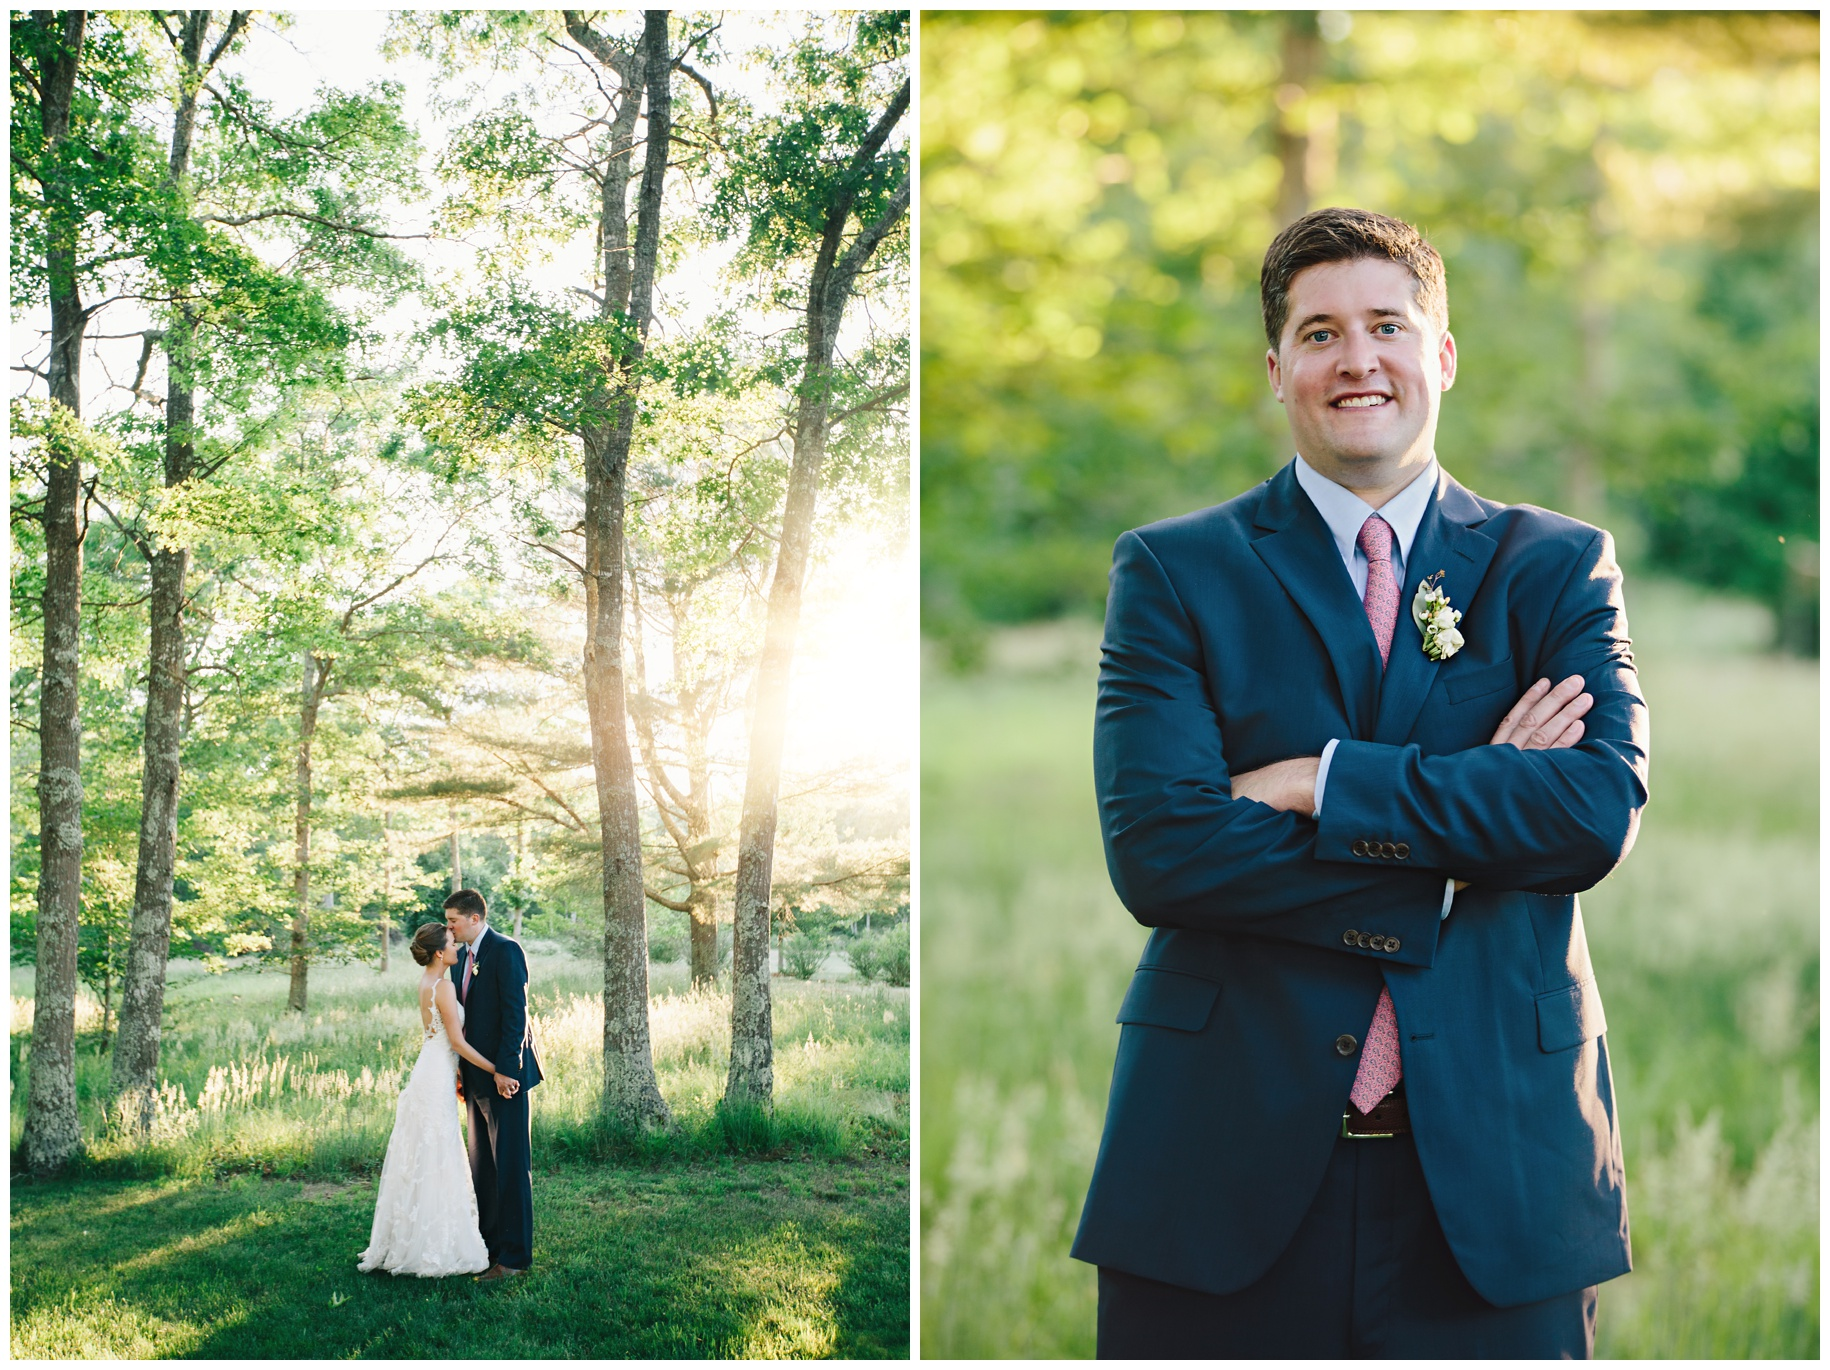 maineweddingphotographer_massachusetts_marthasvineyard_island_newengland-055